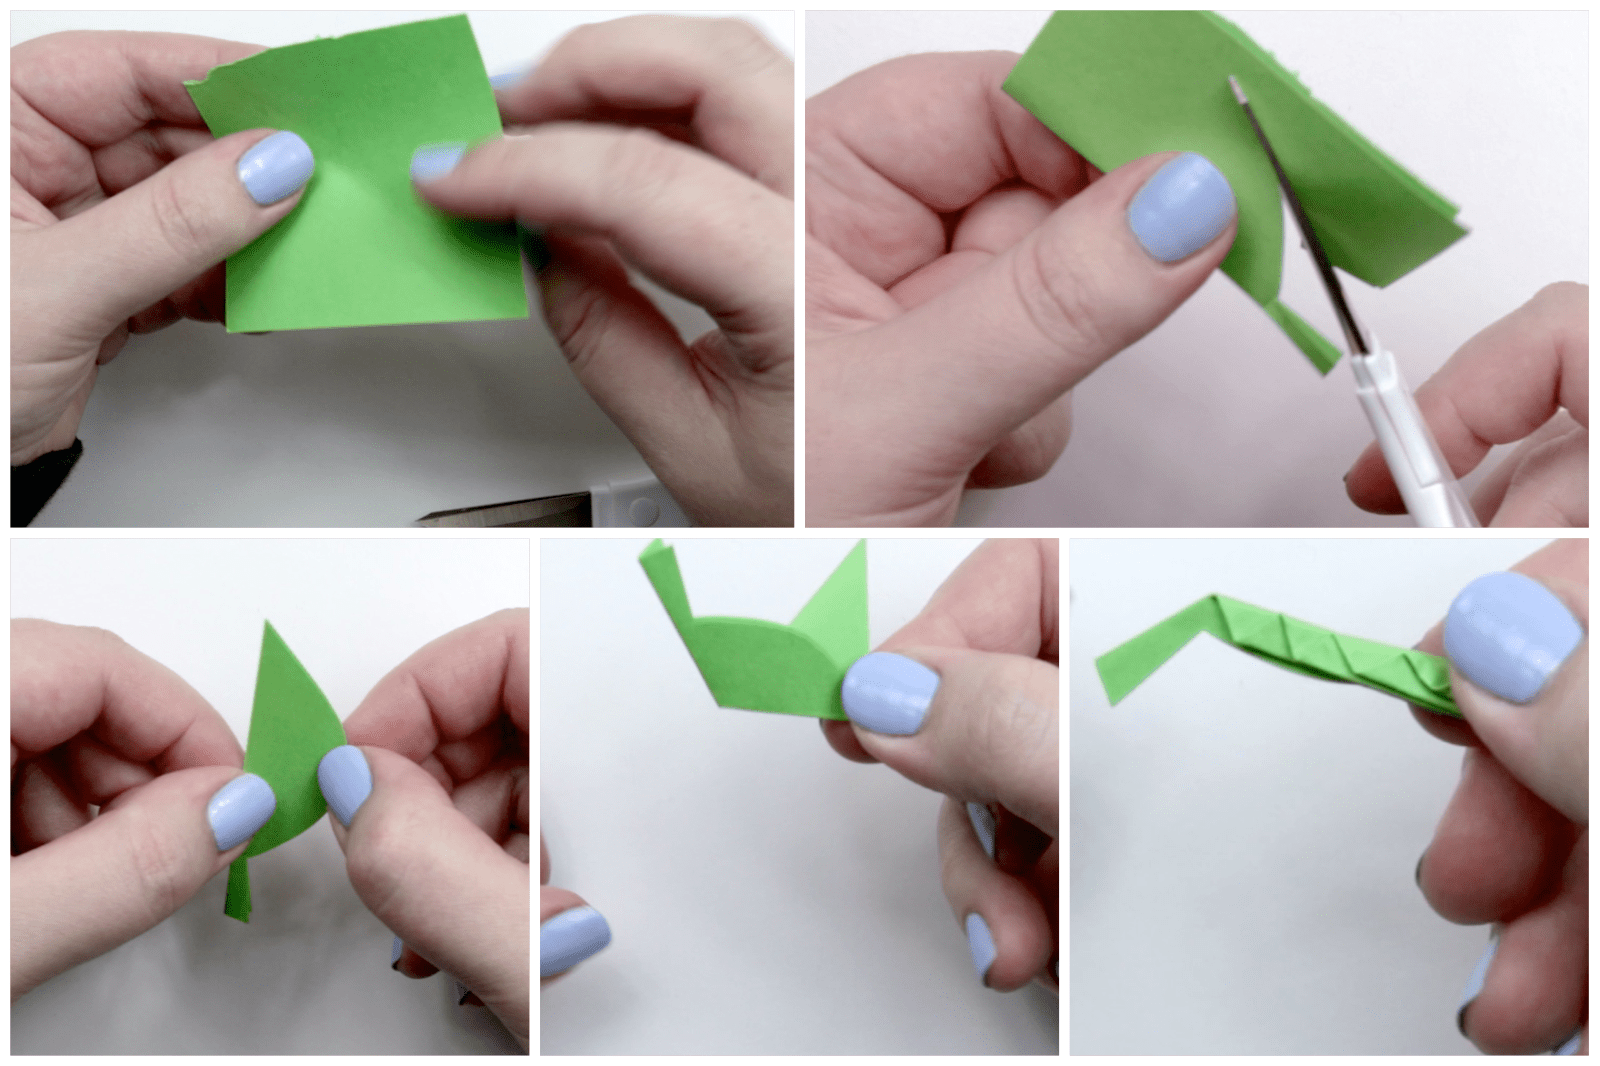 Shaping the leaf design out of the green paper.